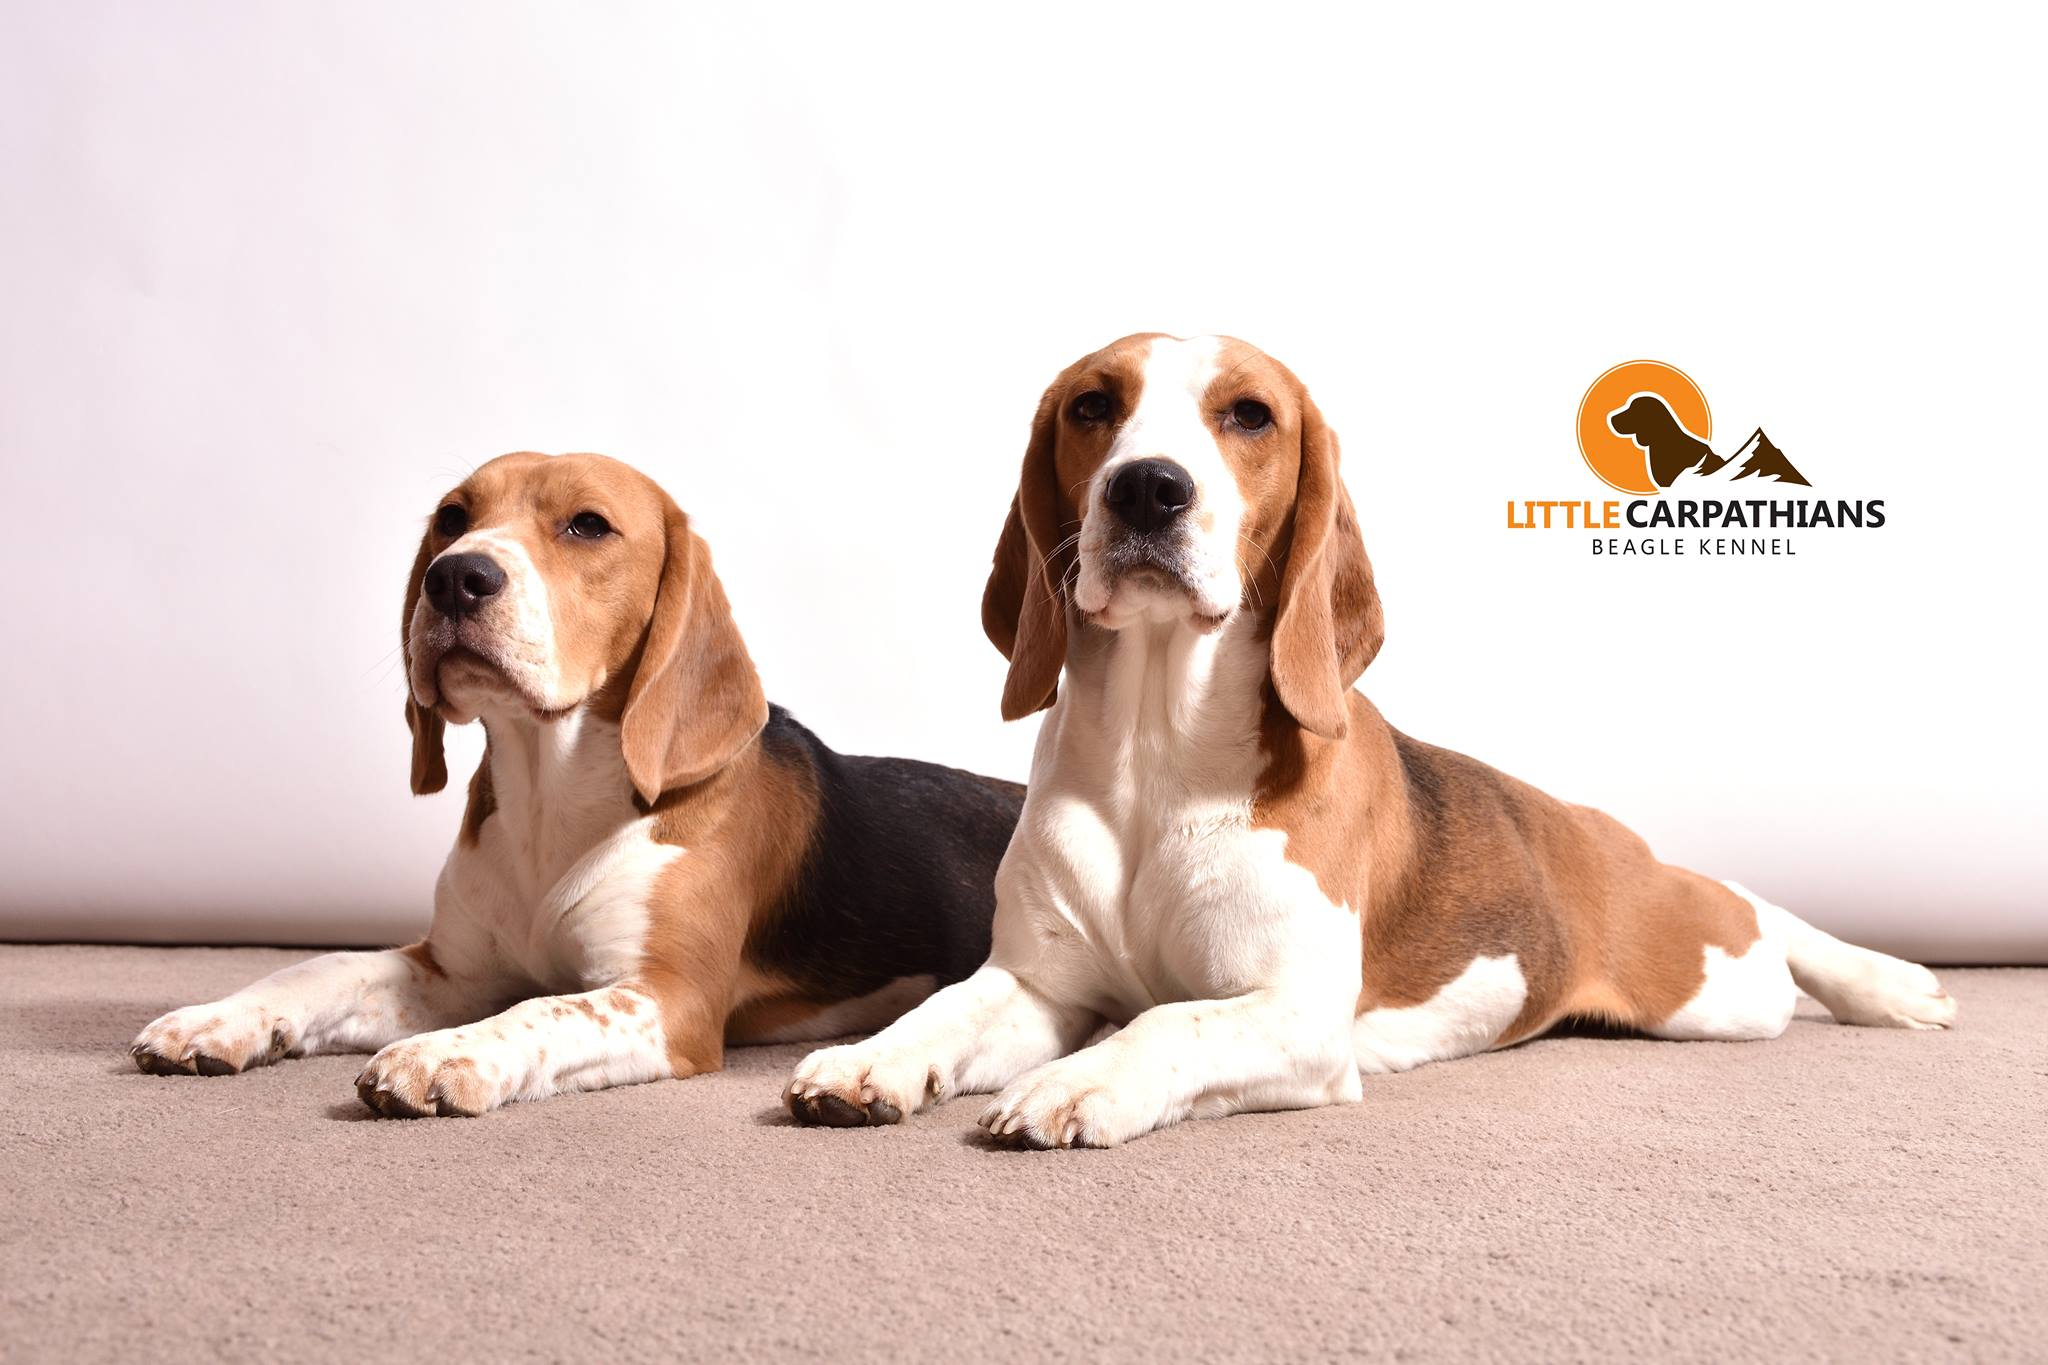 Little Carpathians | Beagle Kennel